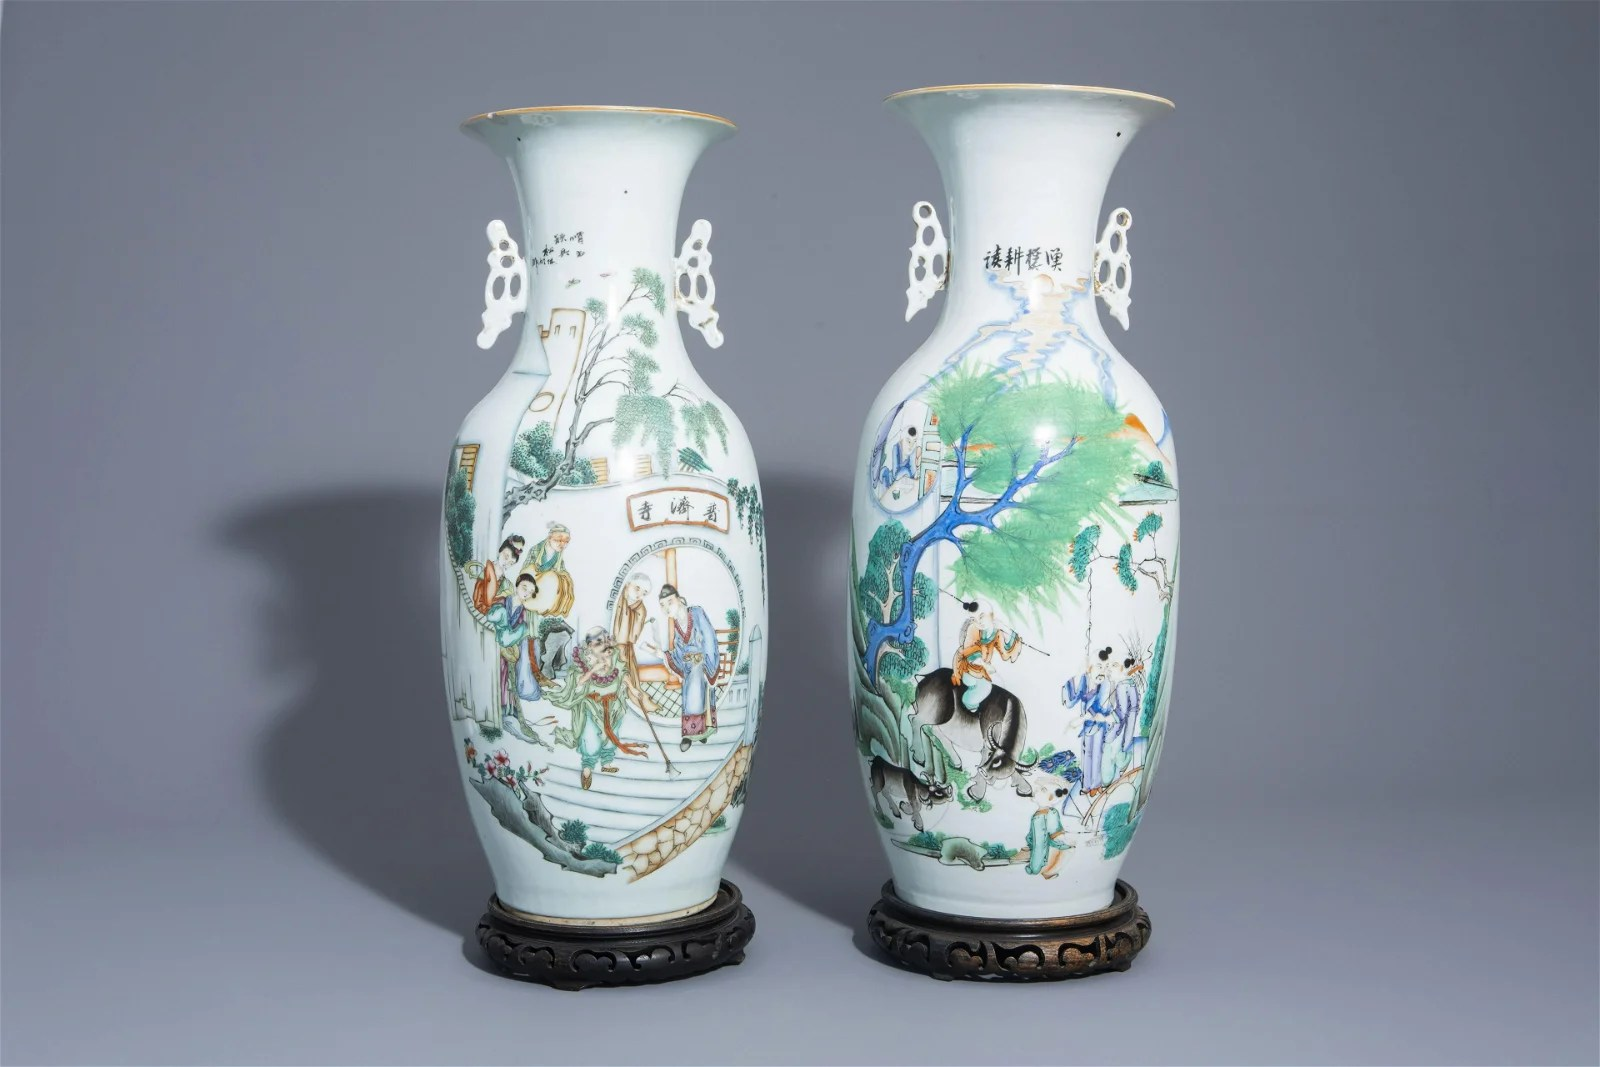 Two Chinese famille rose vases with figures, 19th/20th